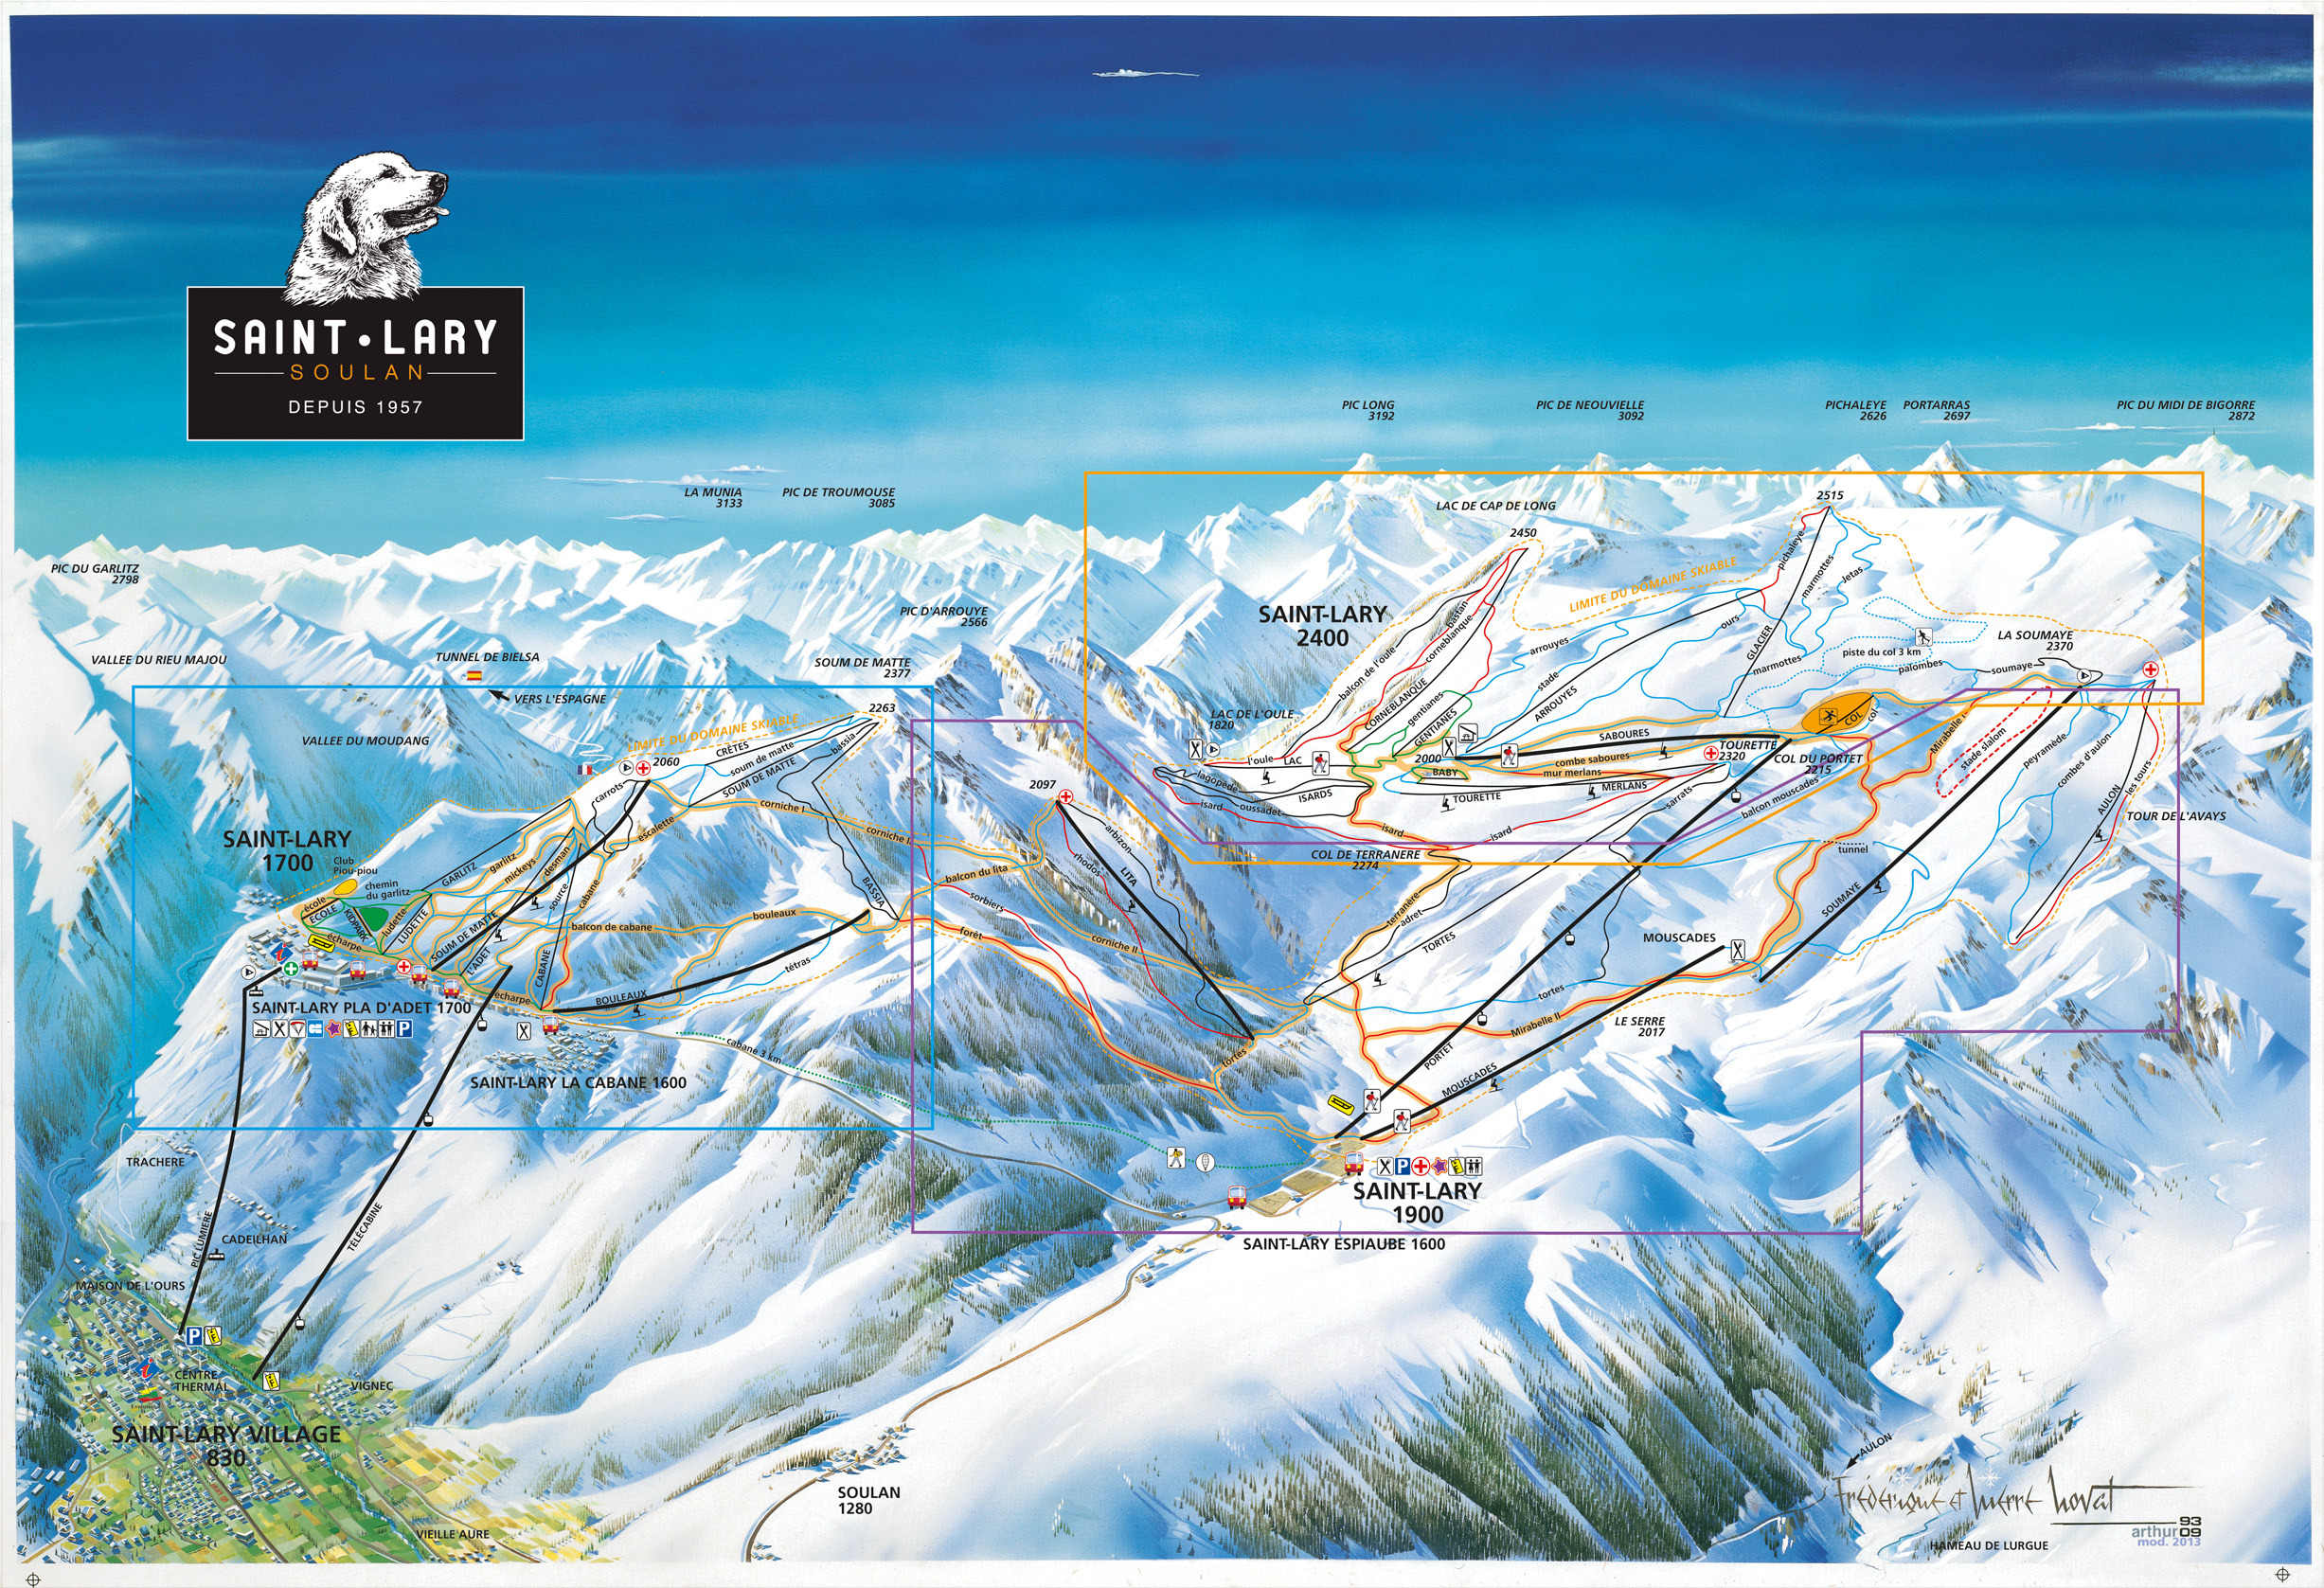 Saint-Lary-Soulan France  city photo : Saint Lary Soulan Piste Map | Plan of ski slopes and lifts | OnTheSnow